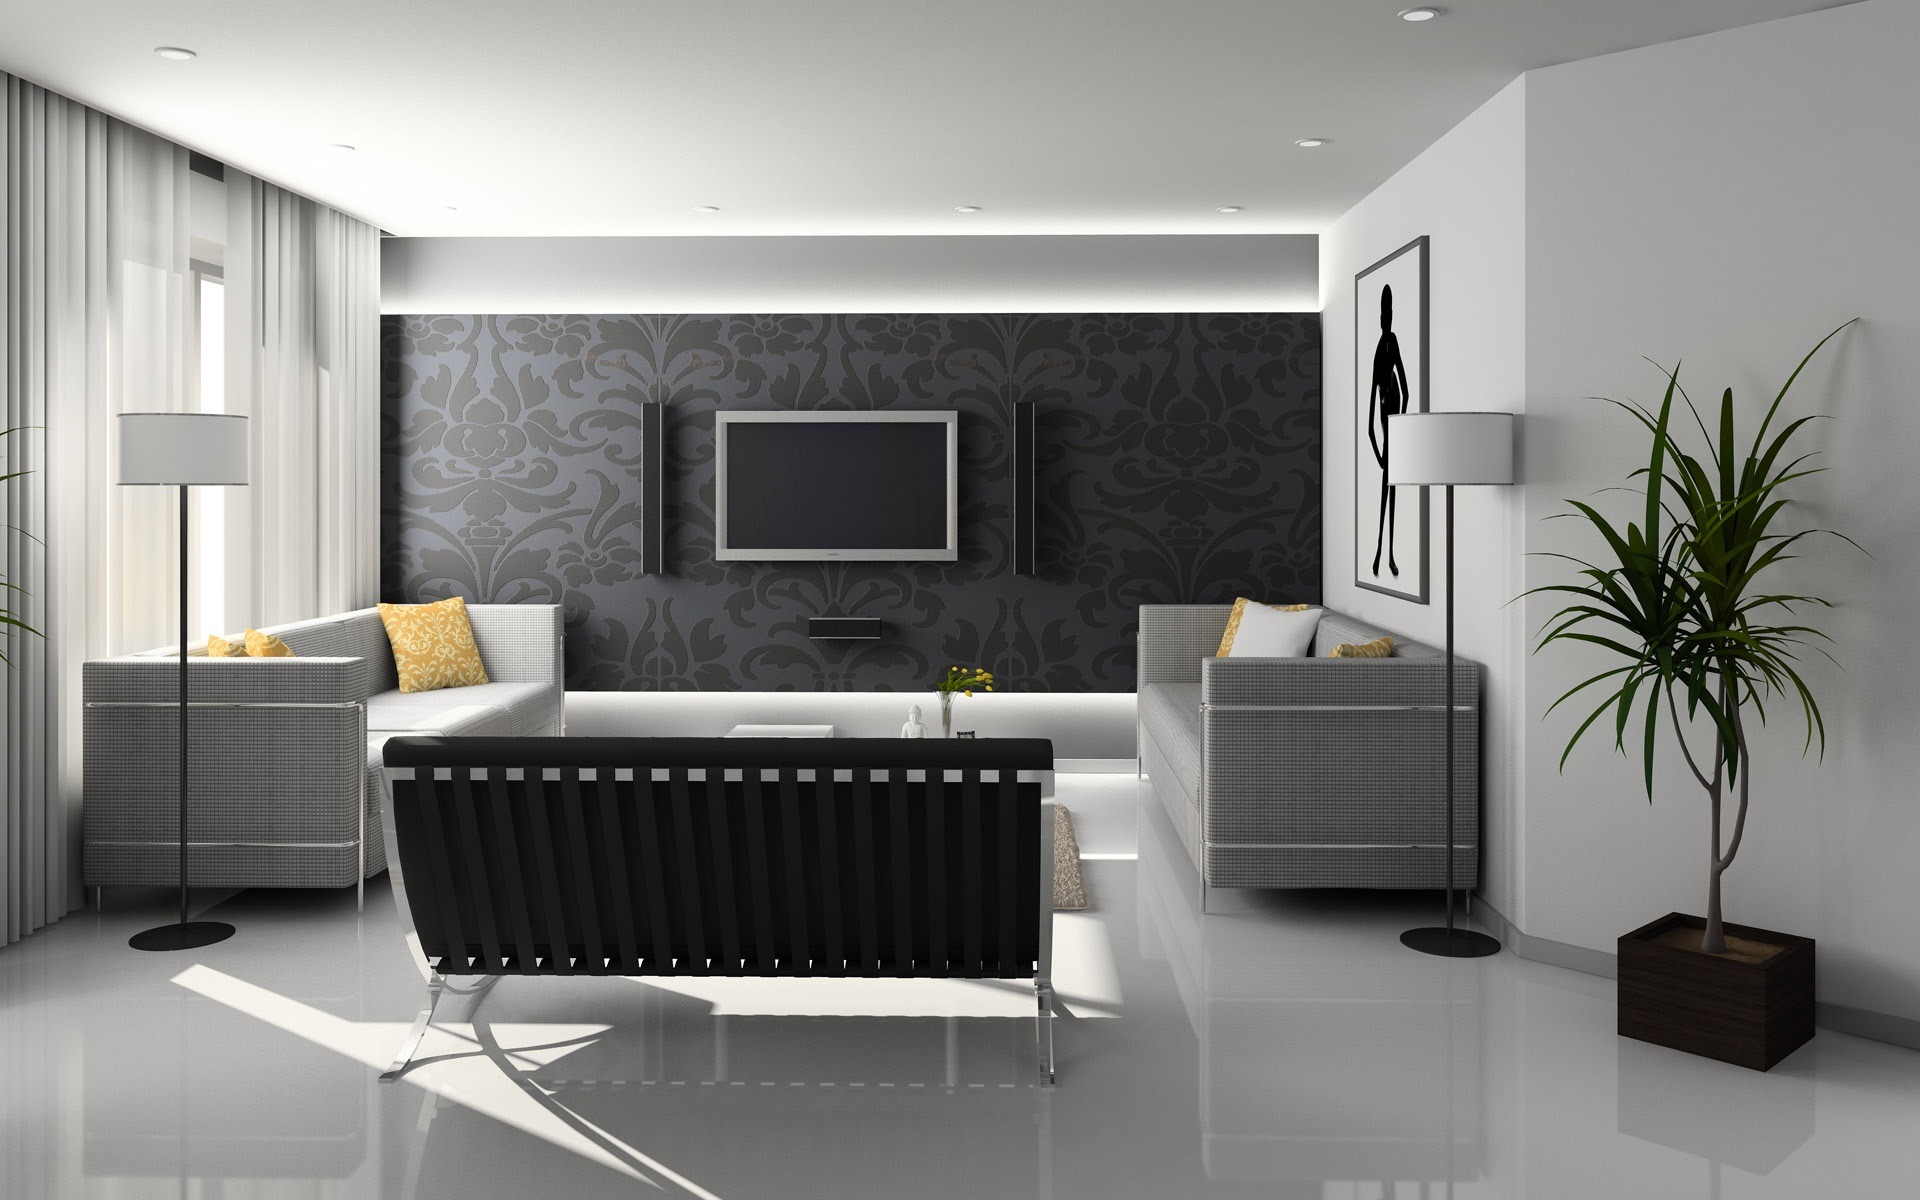 amazing living room wallpaper sofa furniture 1000 beautiful photos pexels free stock pixabay